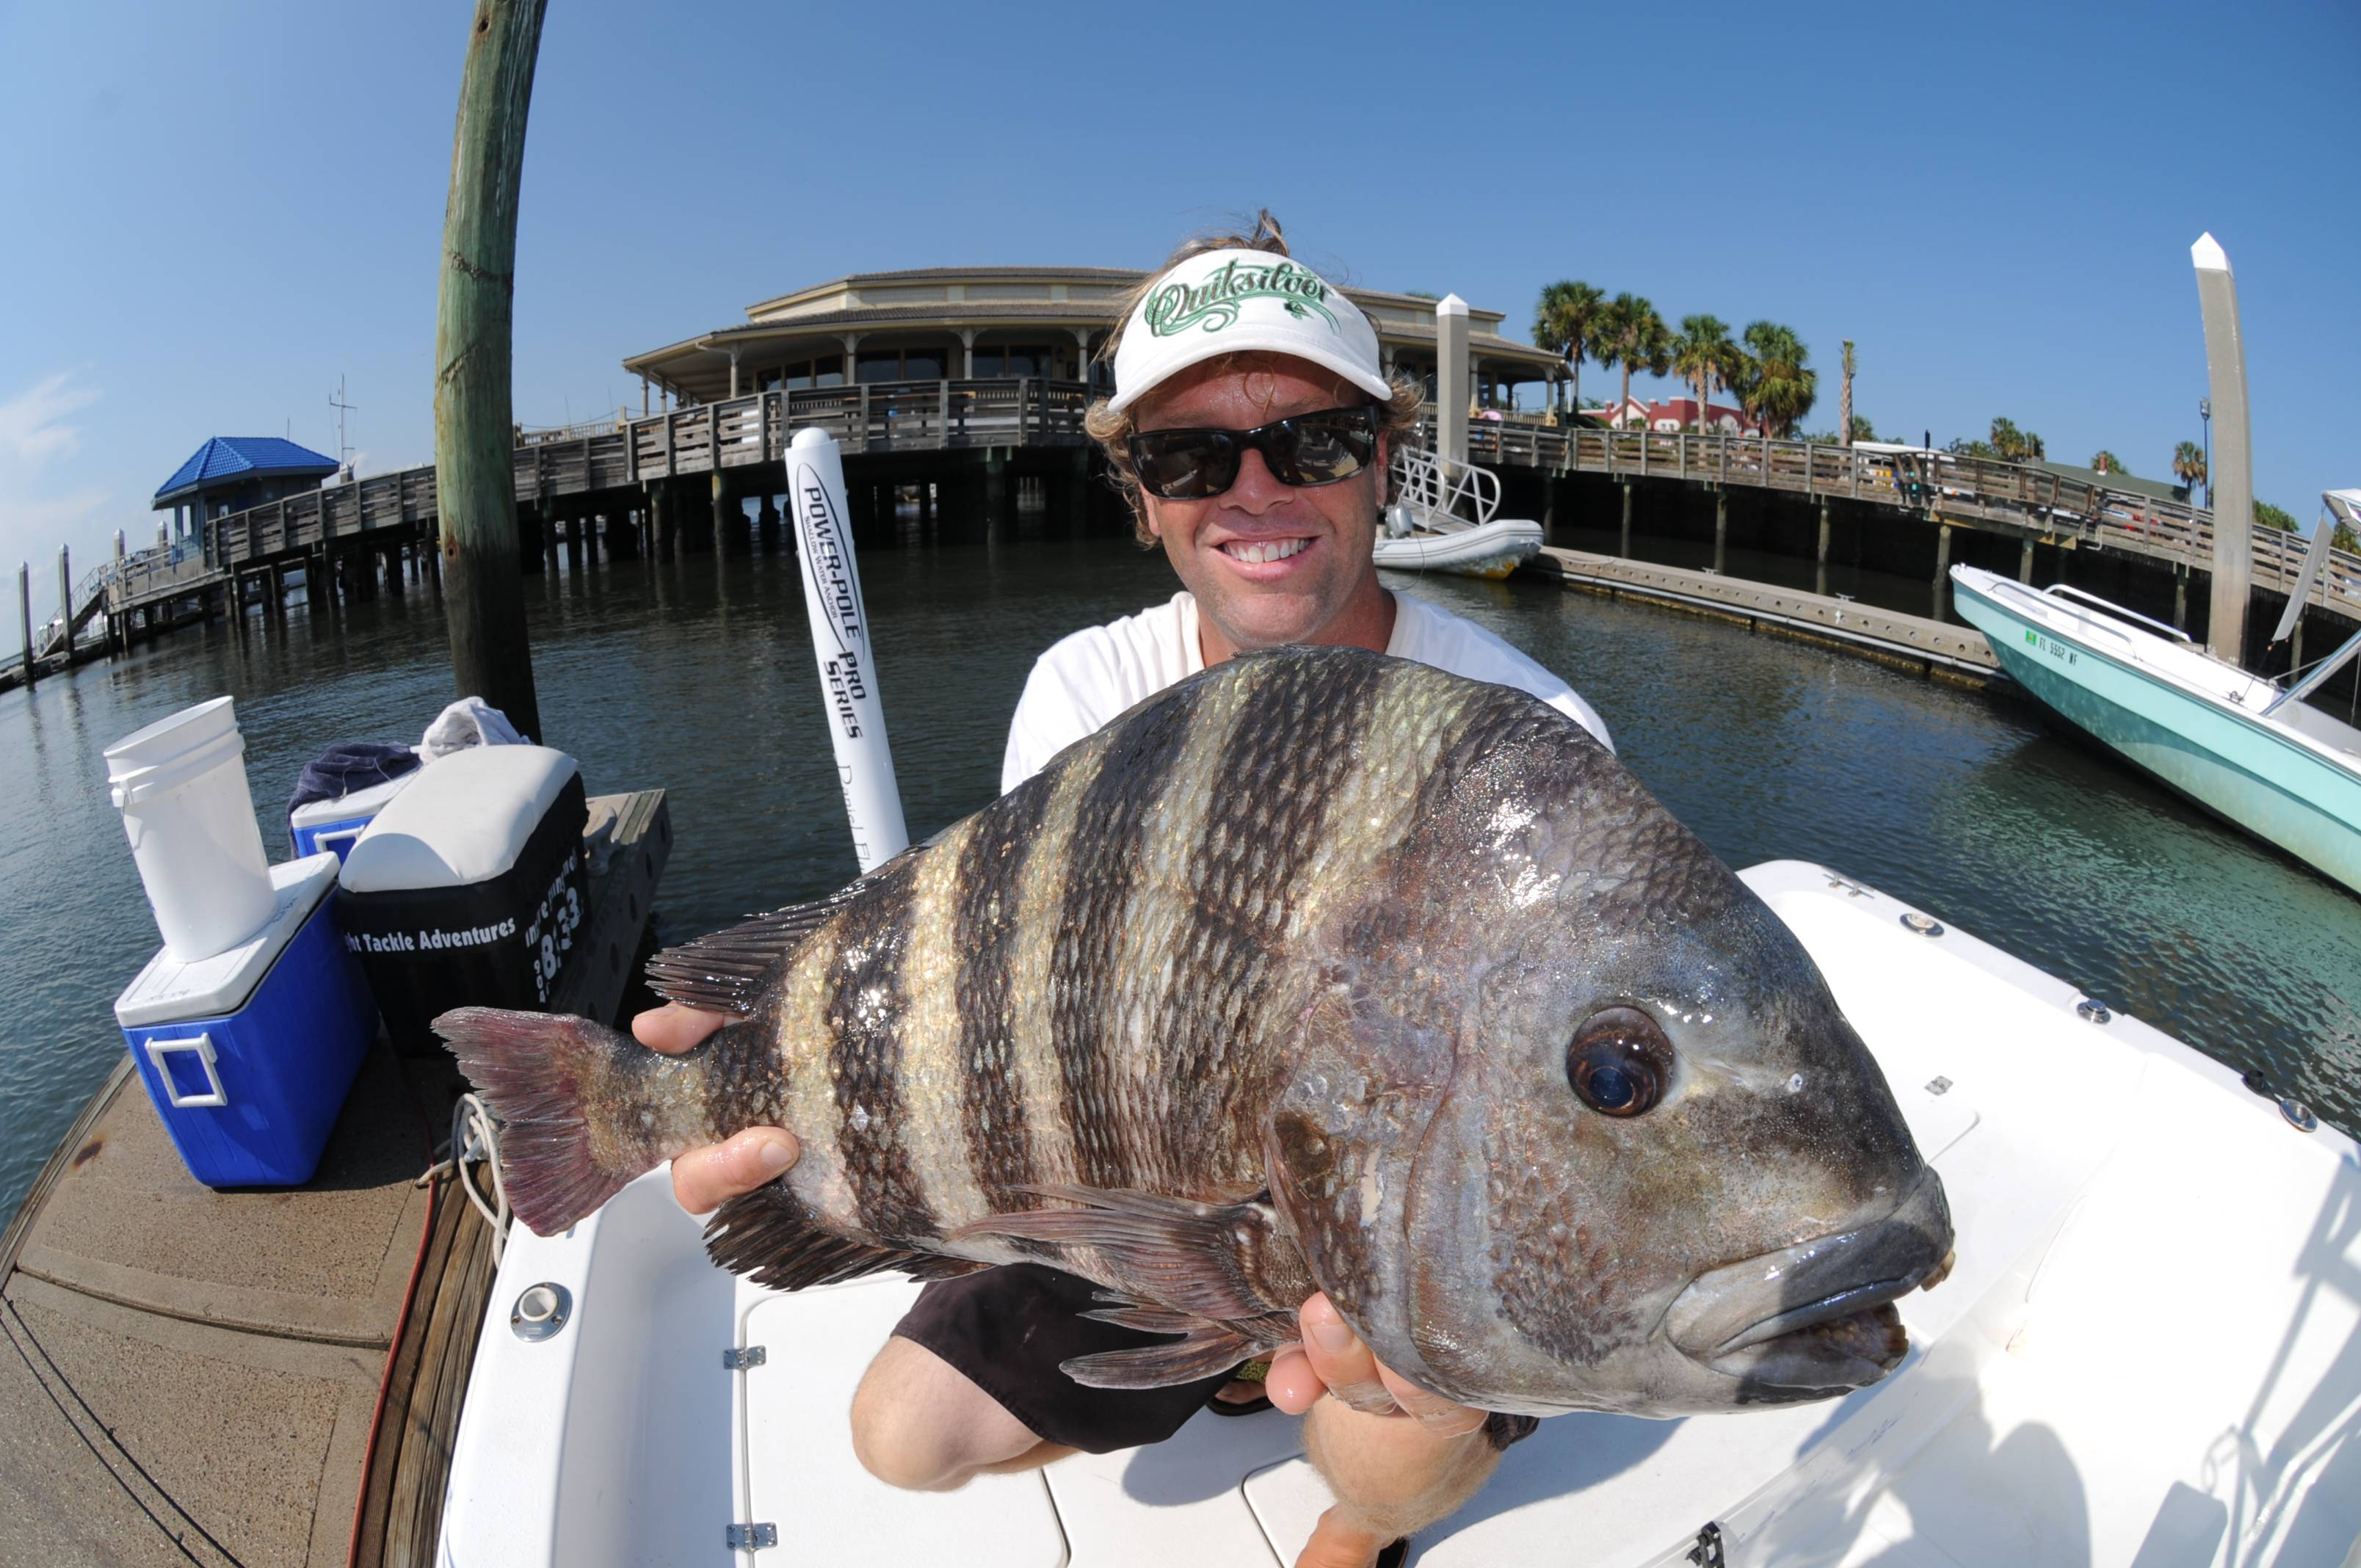 Big bite fish amelia angler outfitters for Sheepshead fish eating